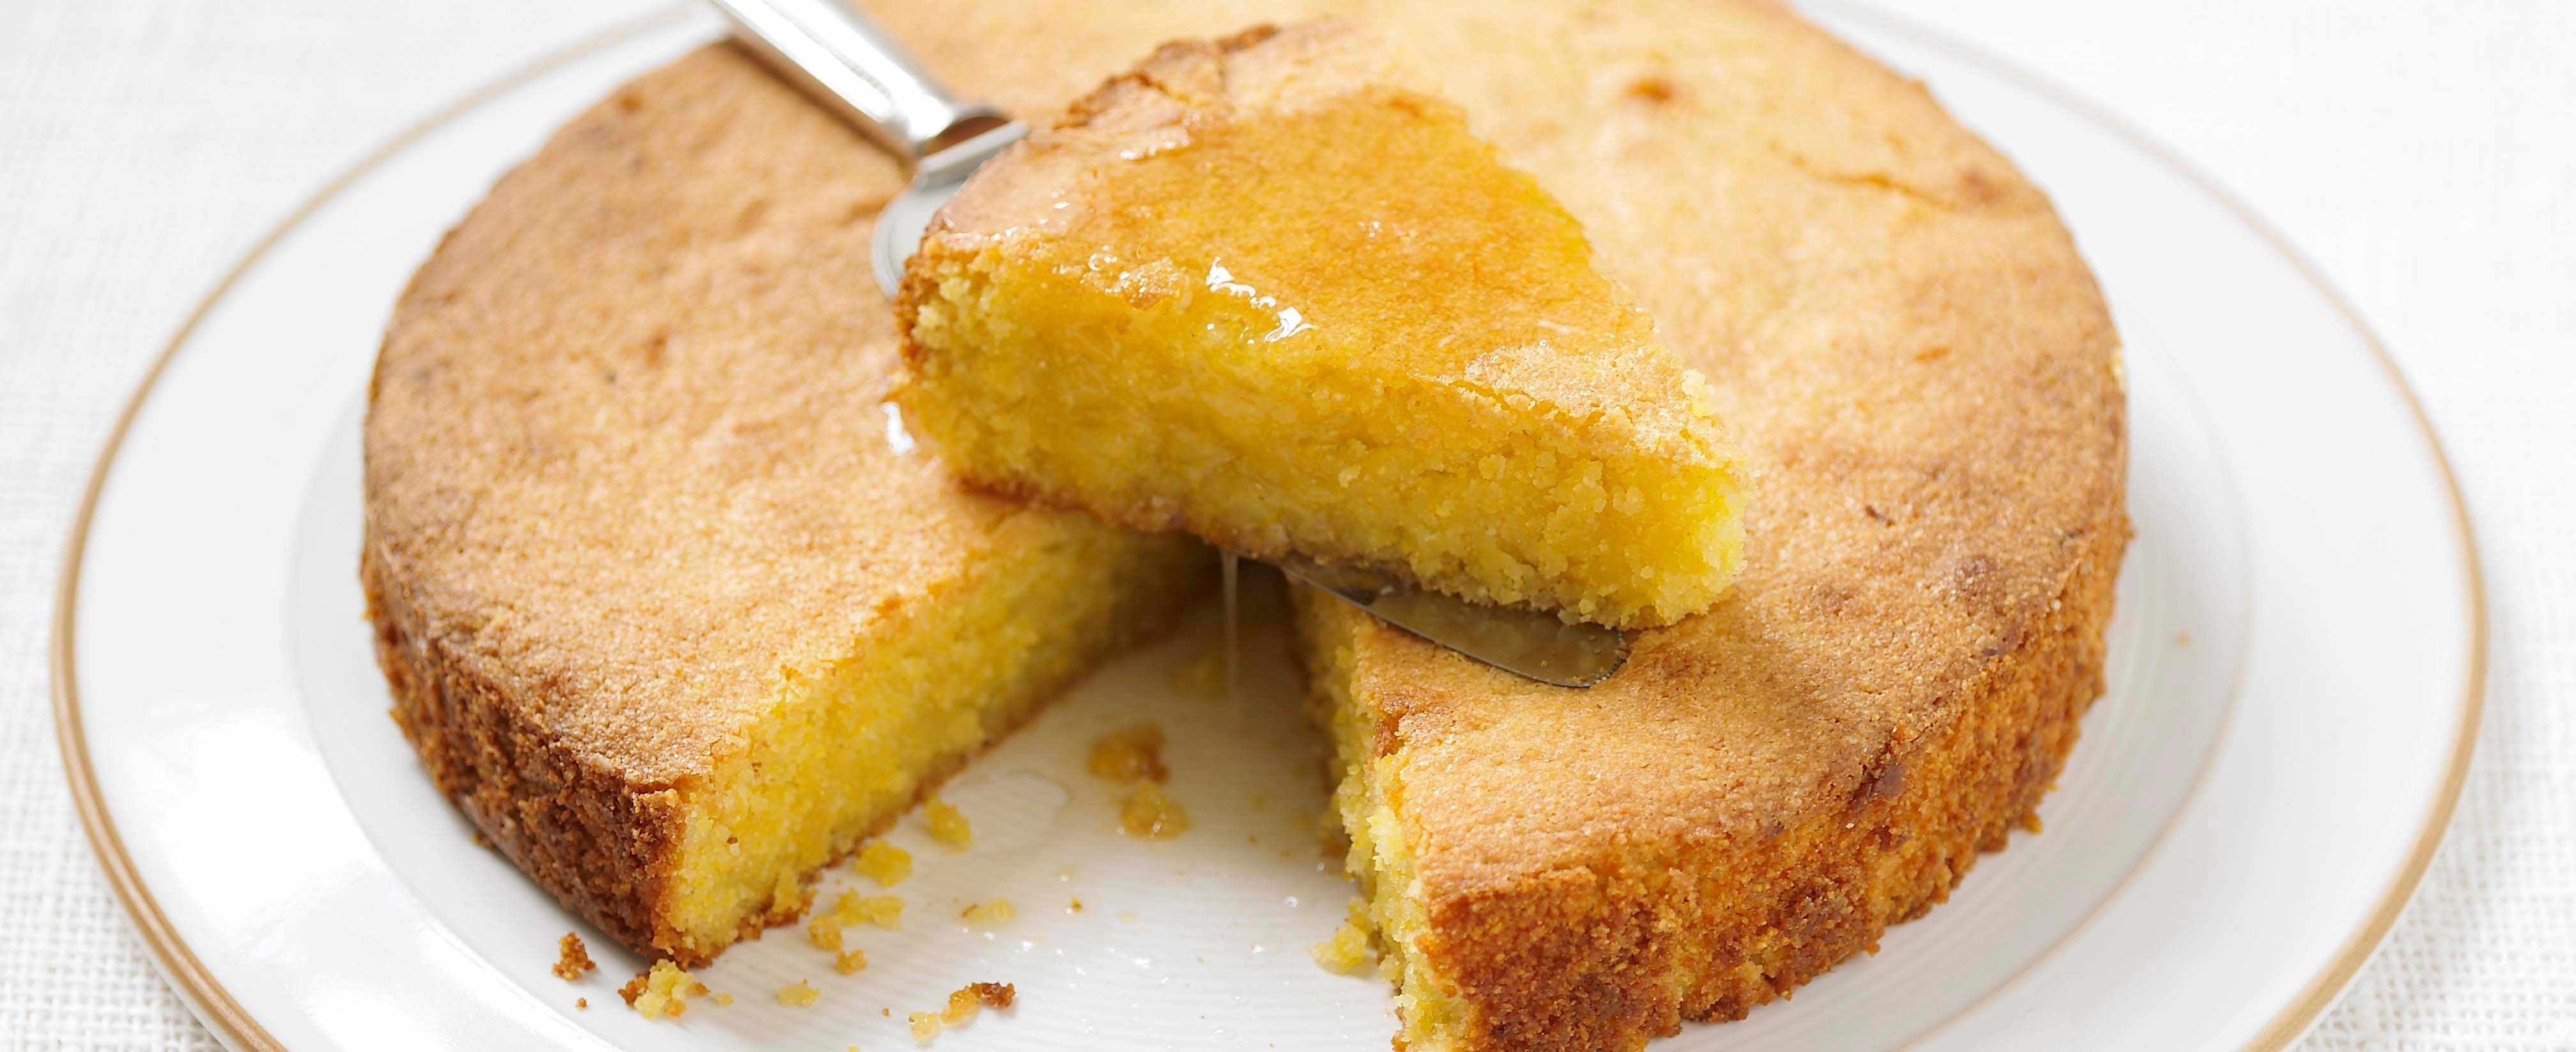 Lemon polenta cake with limoncello syrup